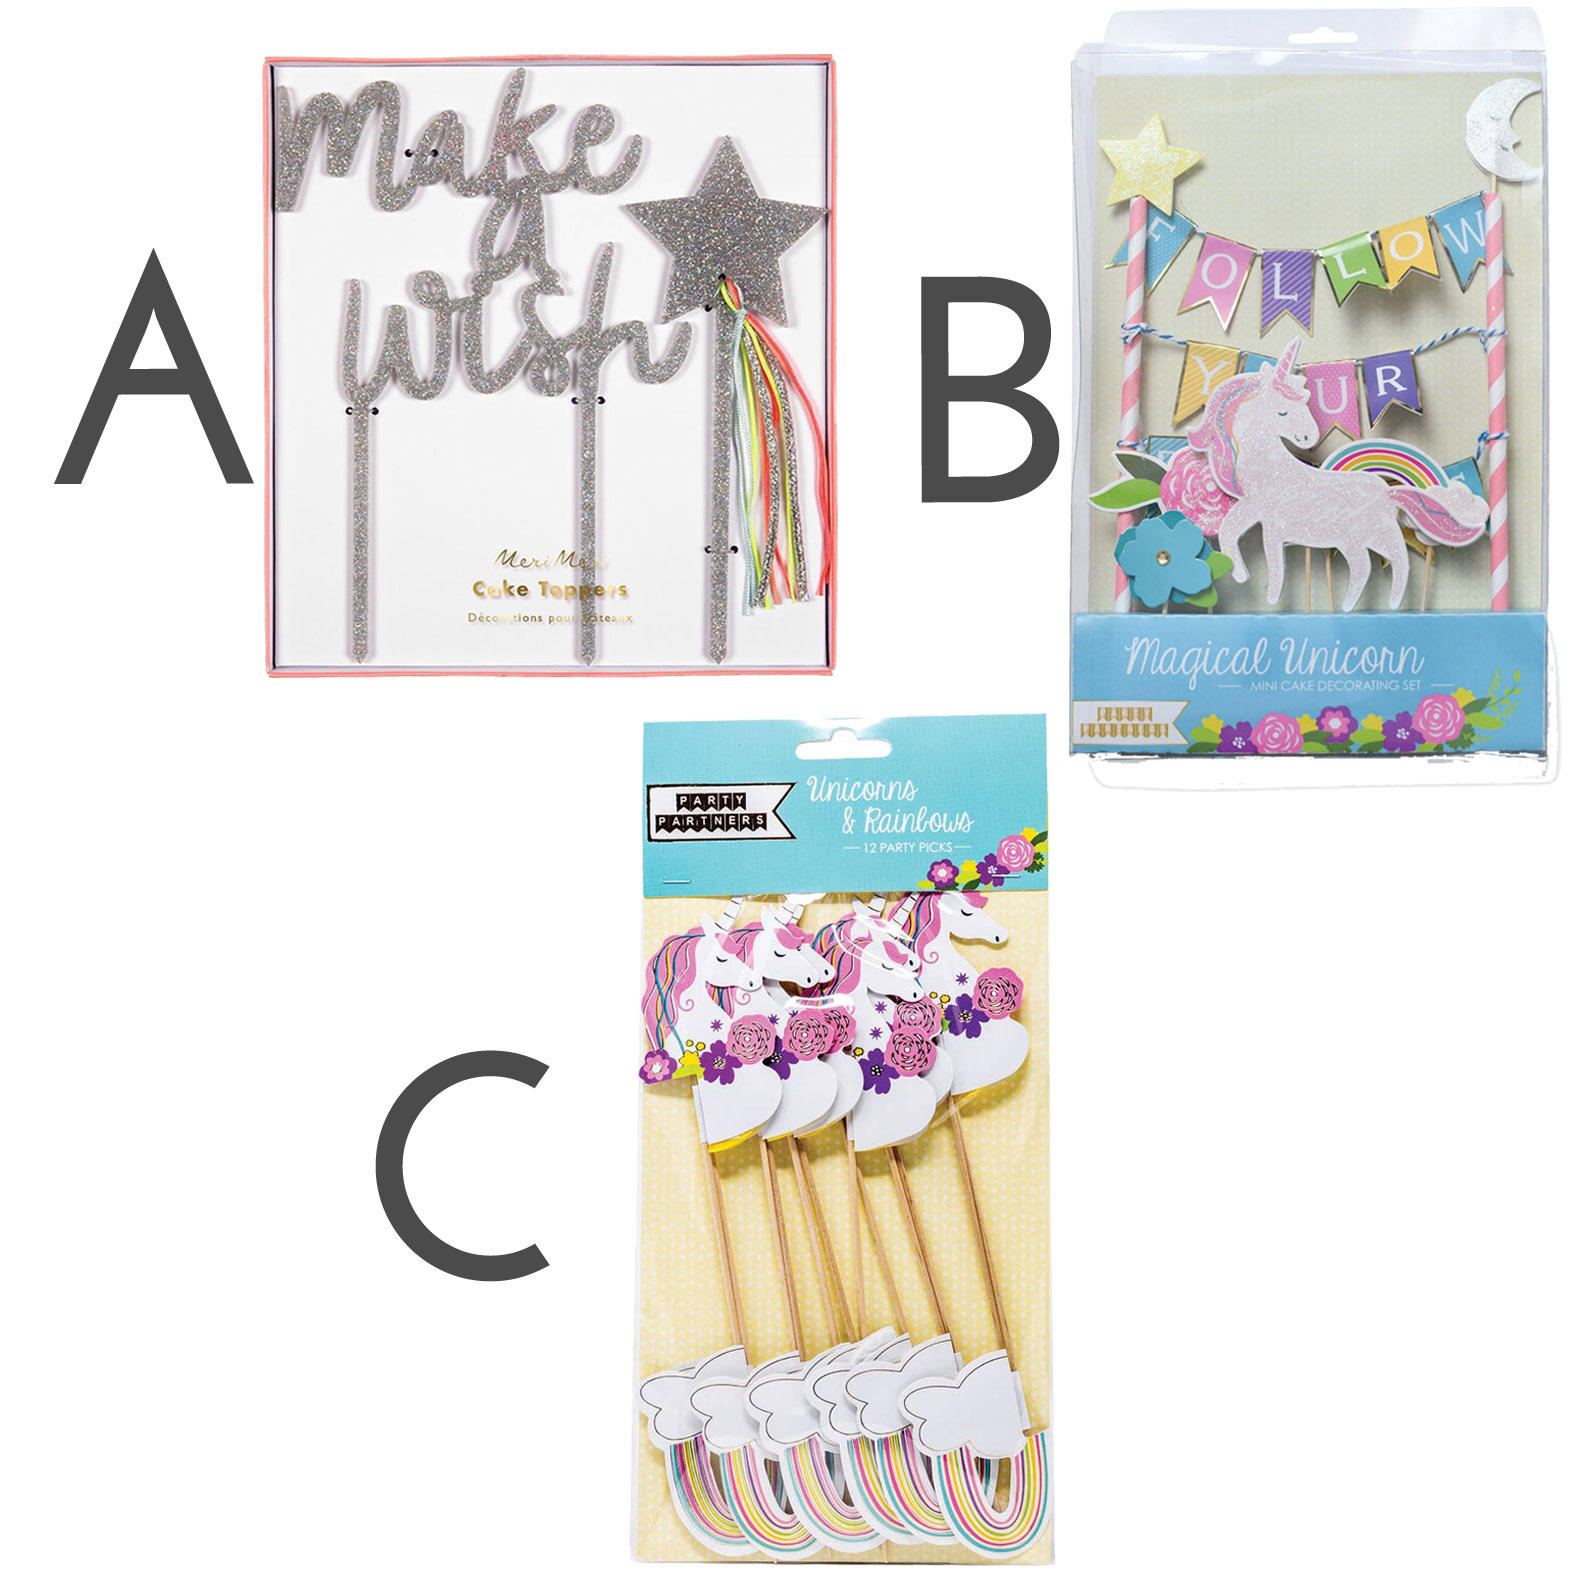 Kate's-Safe-&-Sweet--Unicorn-and-Rainbows-Baking-Box---Topper-Options